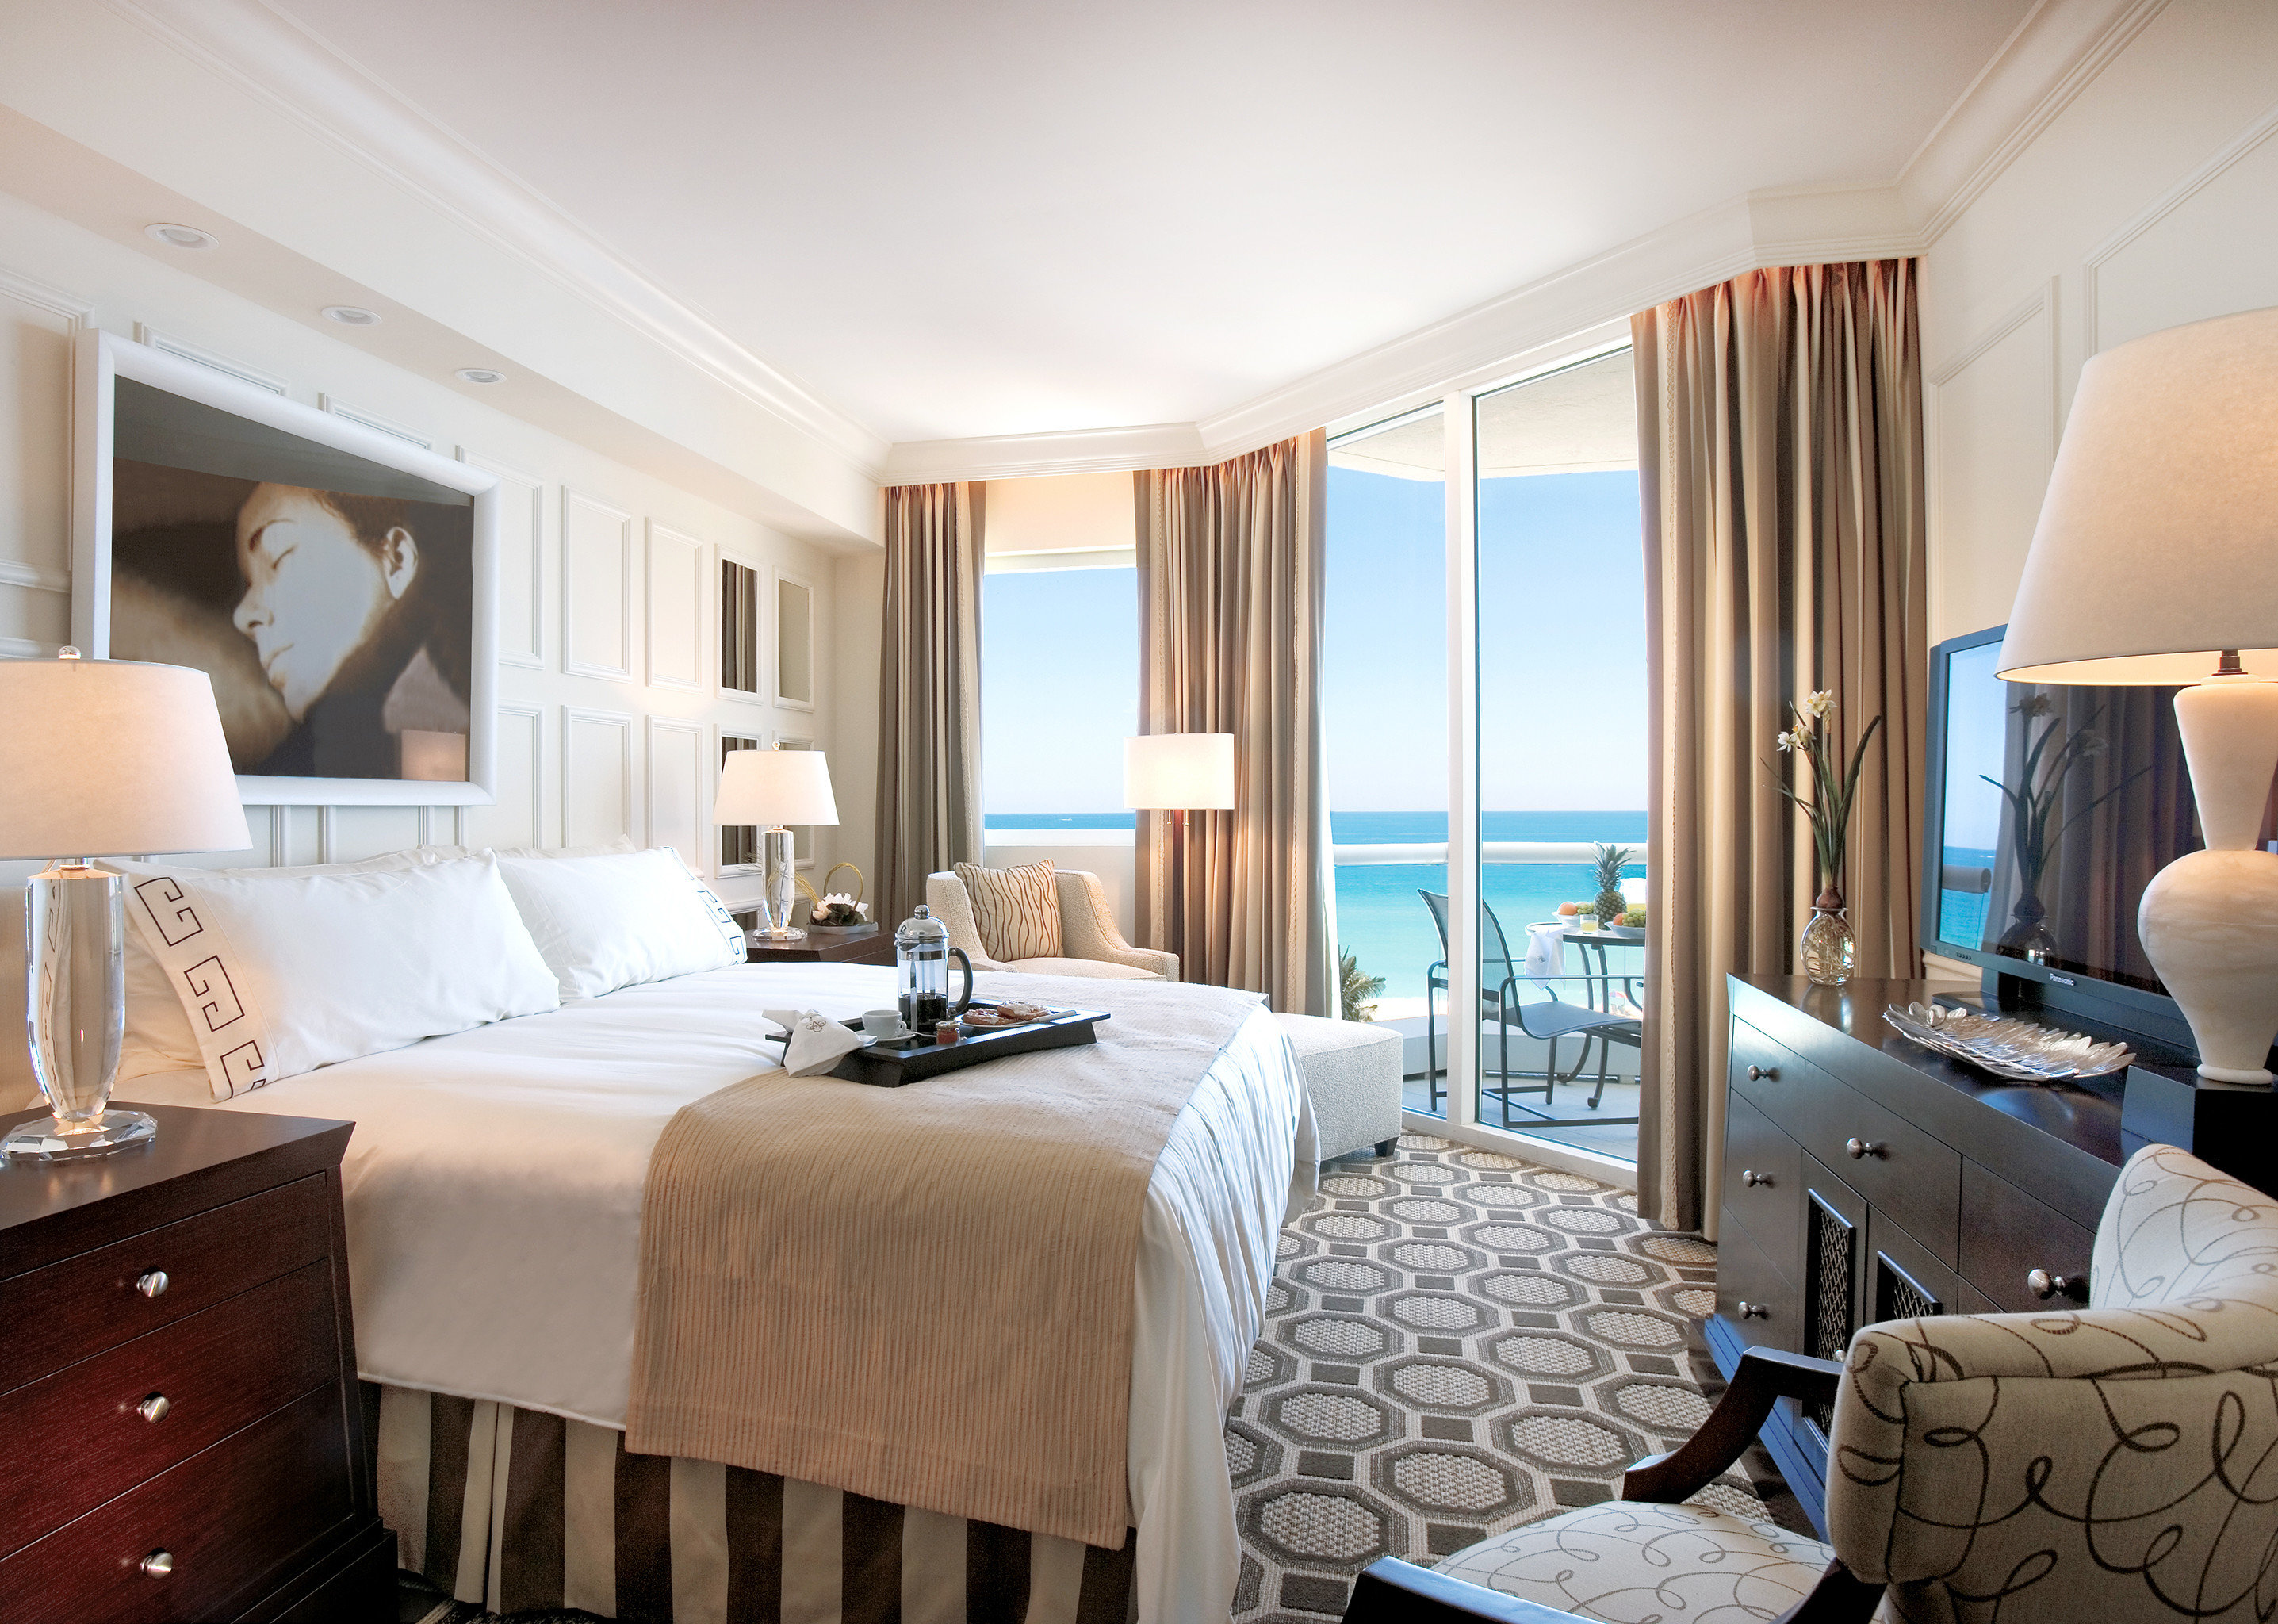 Balcony Bedroom City Elegant Hotels Luxury Miami Miami Beach Romantic Scenic views Waterfront property Suite living room home cottage